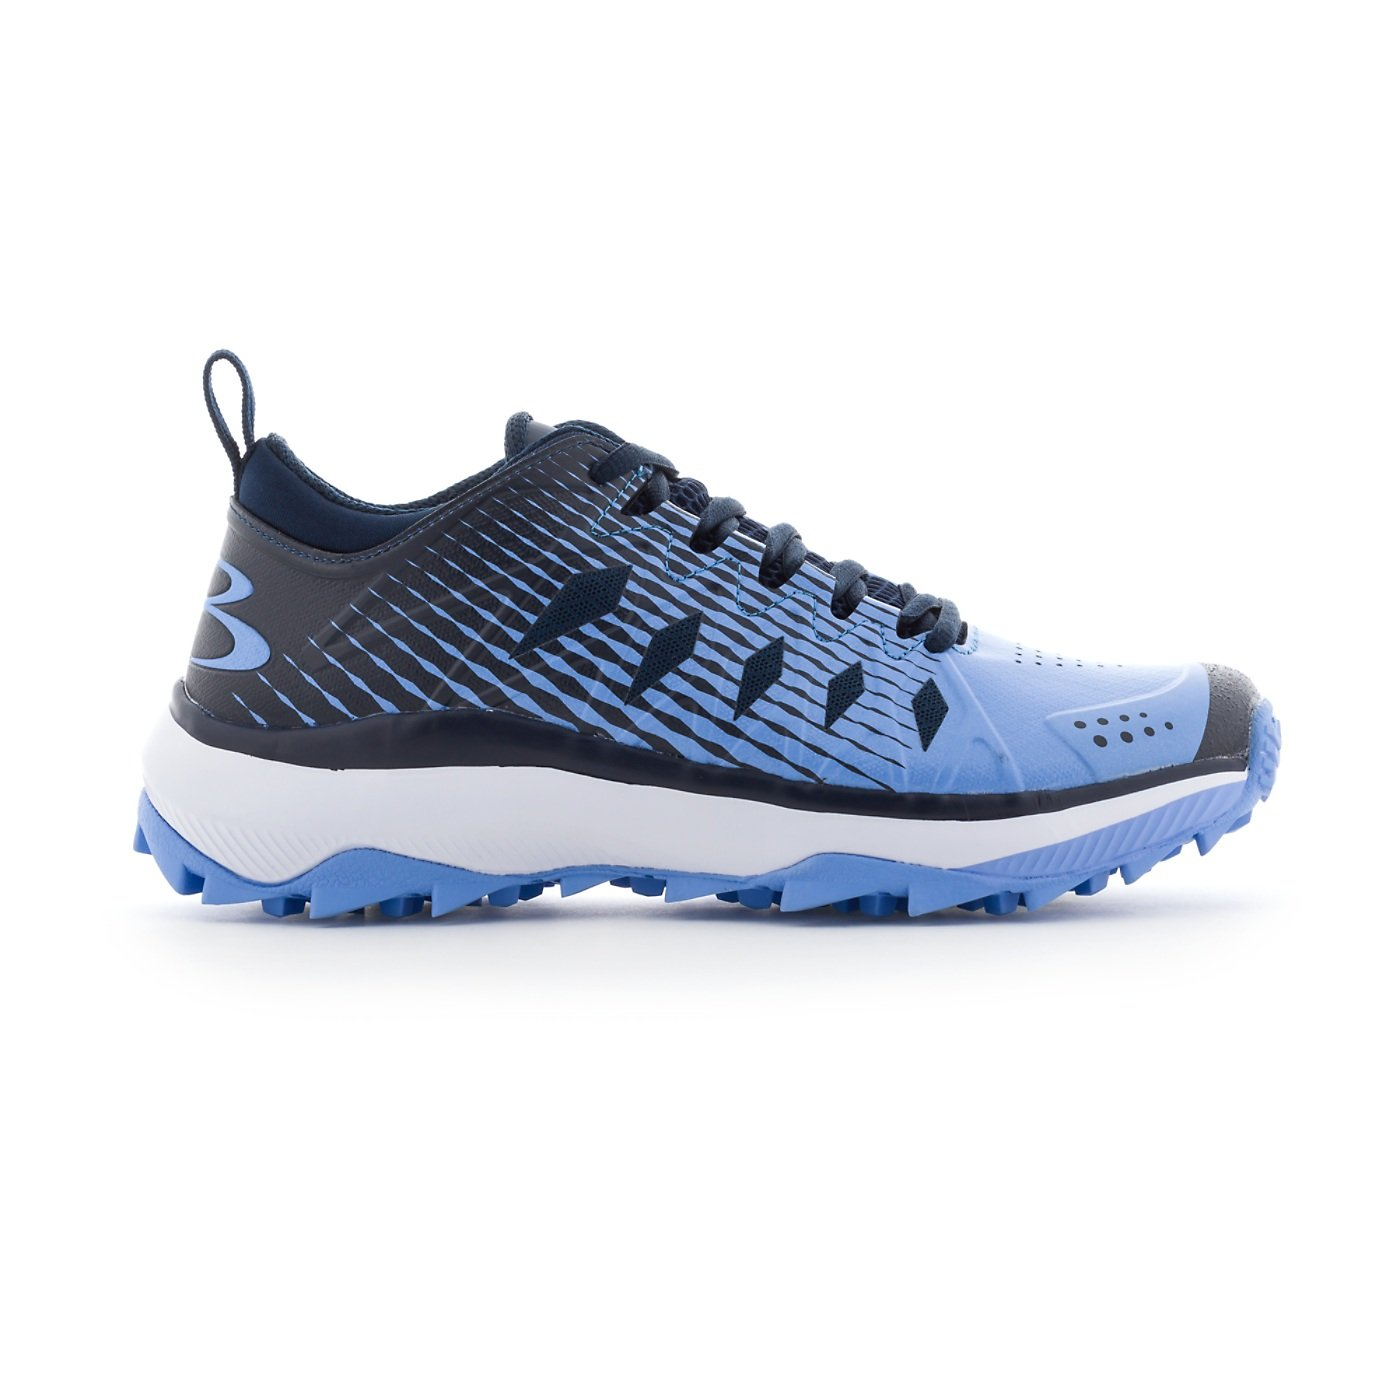 Boombah Women's Squadron Turf Shoes - 14 Color Options - Multiple Sizes B079JPG2F9 6.5|Navy/Columbia